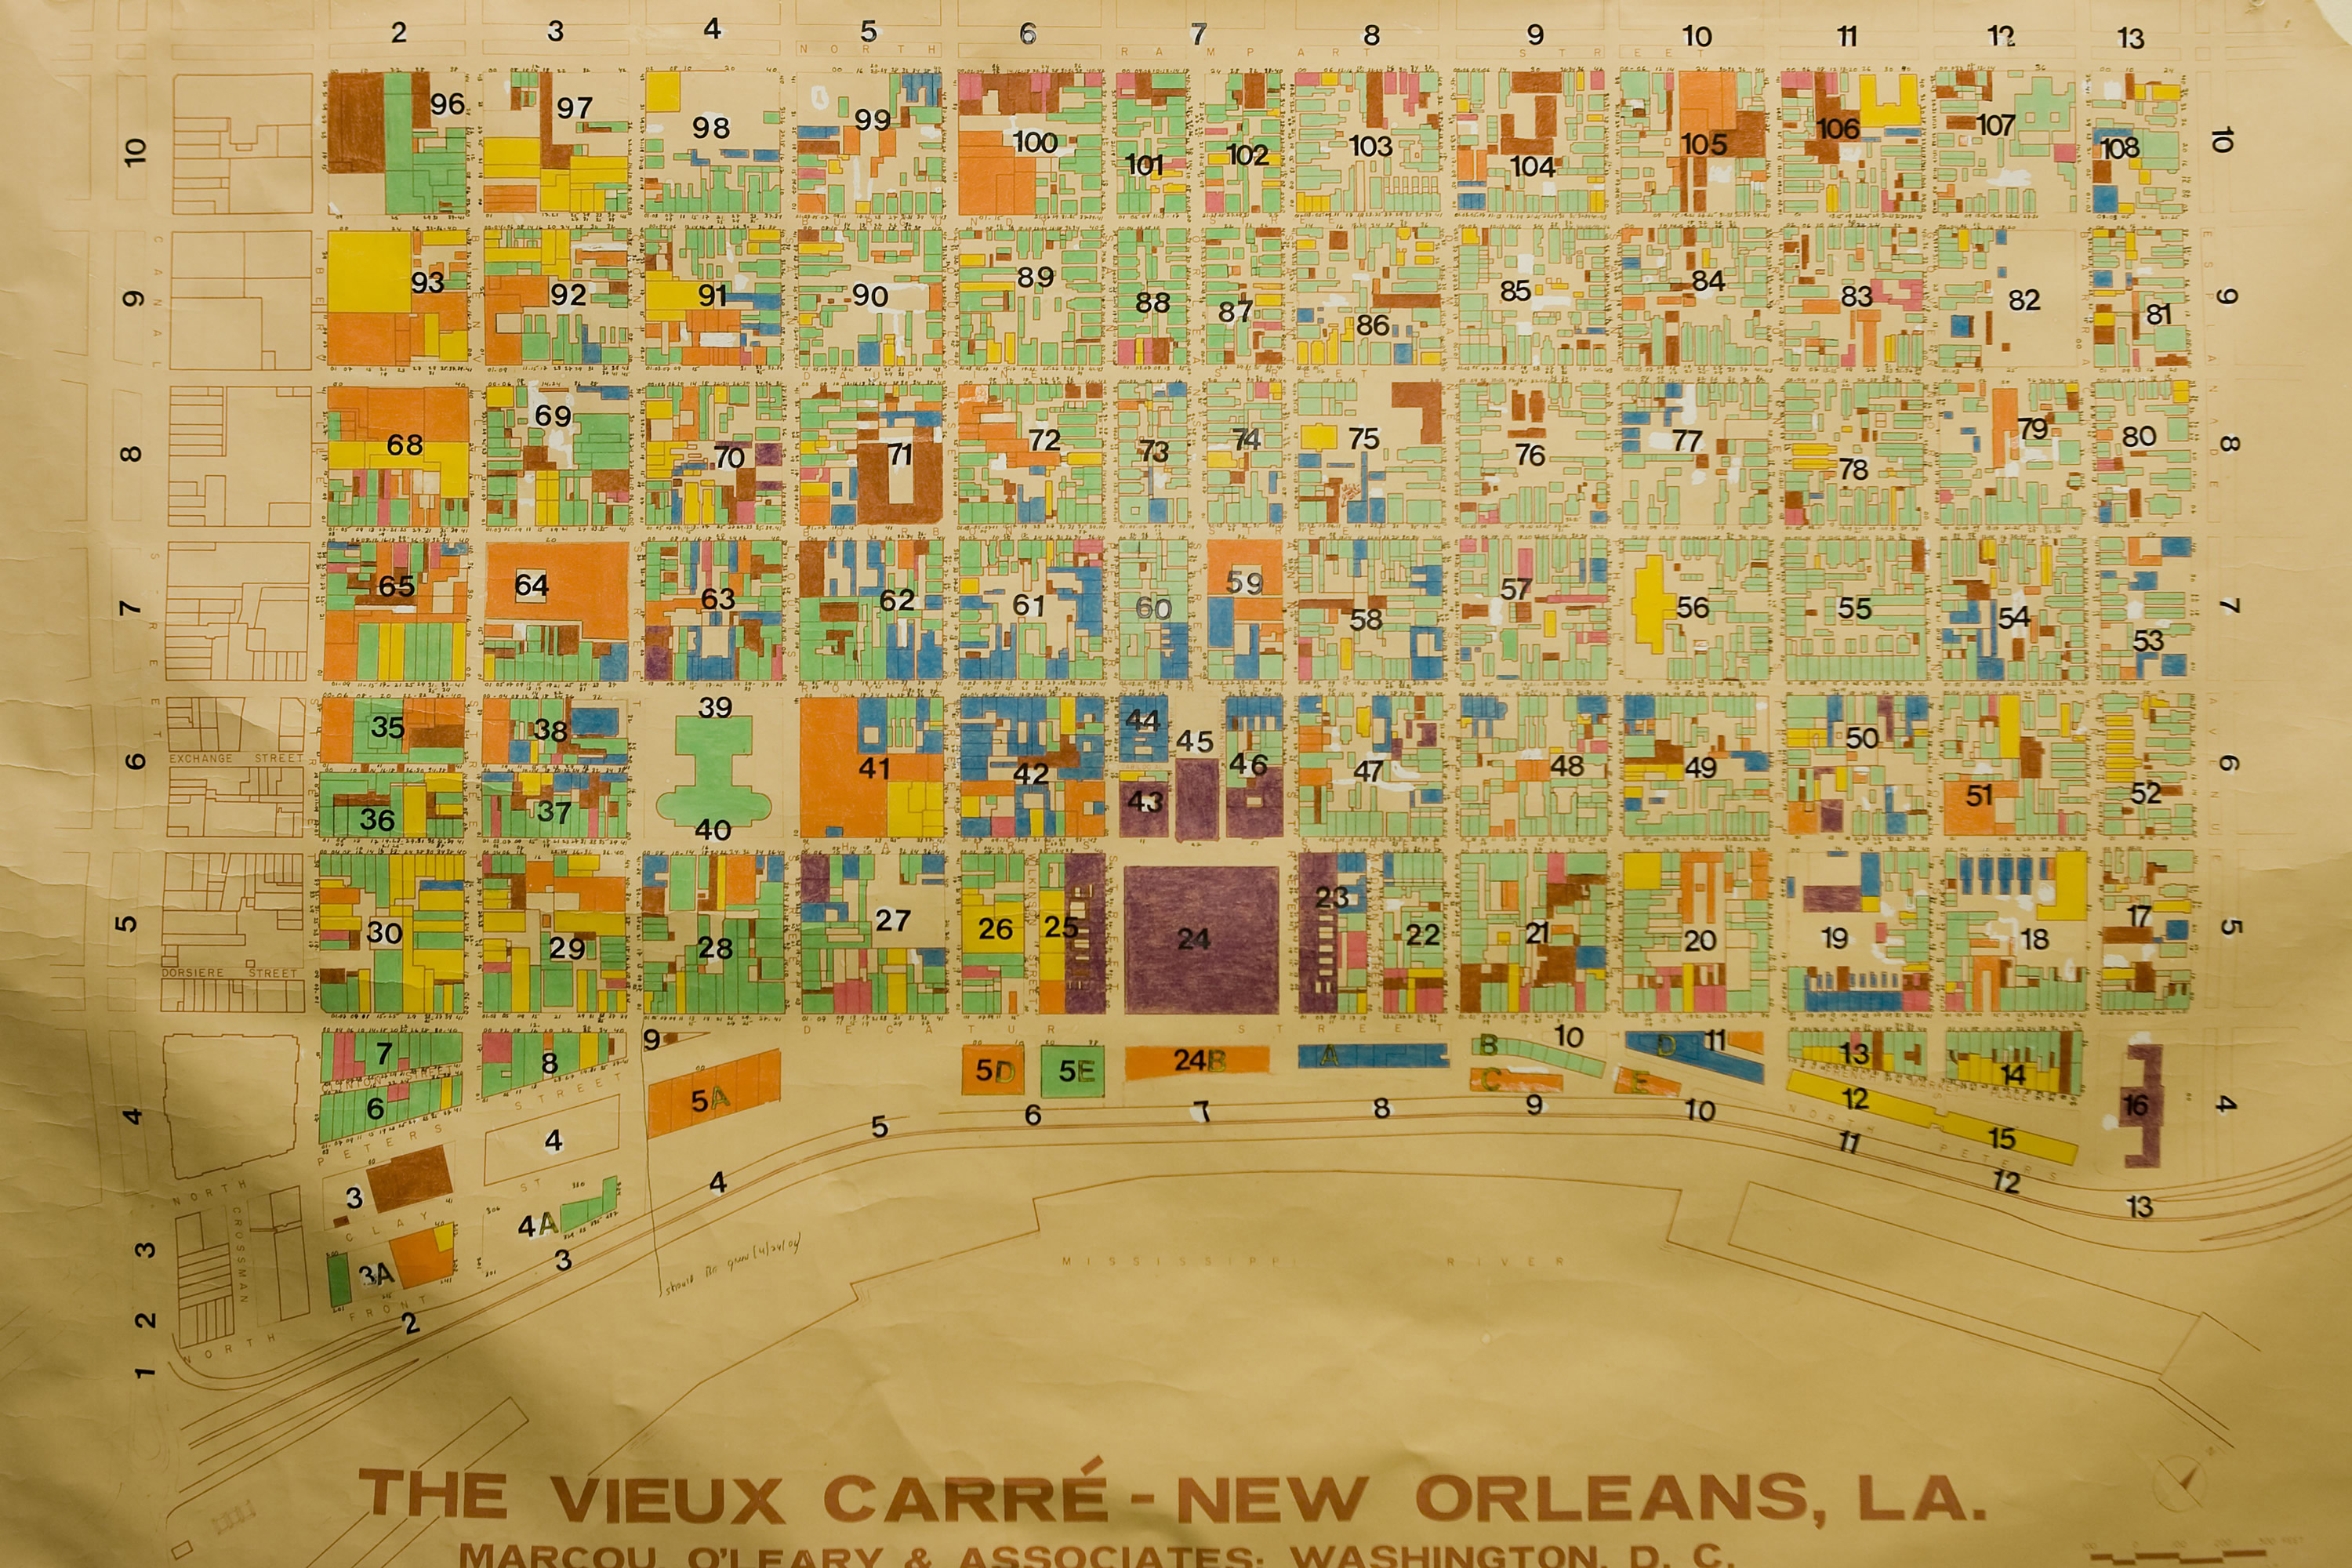 The collins c diboll vieux carr survey maps page creator marcou oleary associates washington dc courtesy of vieux carr commission publication may be restricted gumiabroncs Gallery